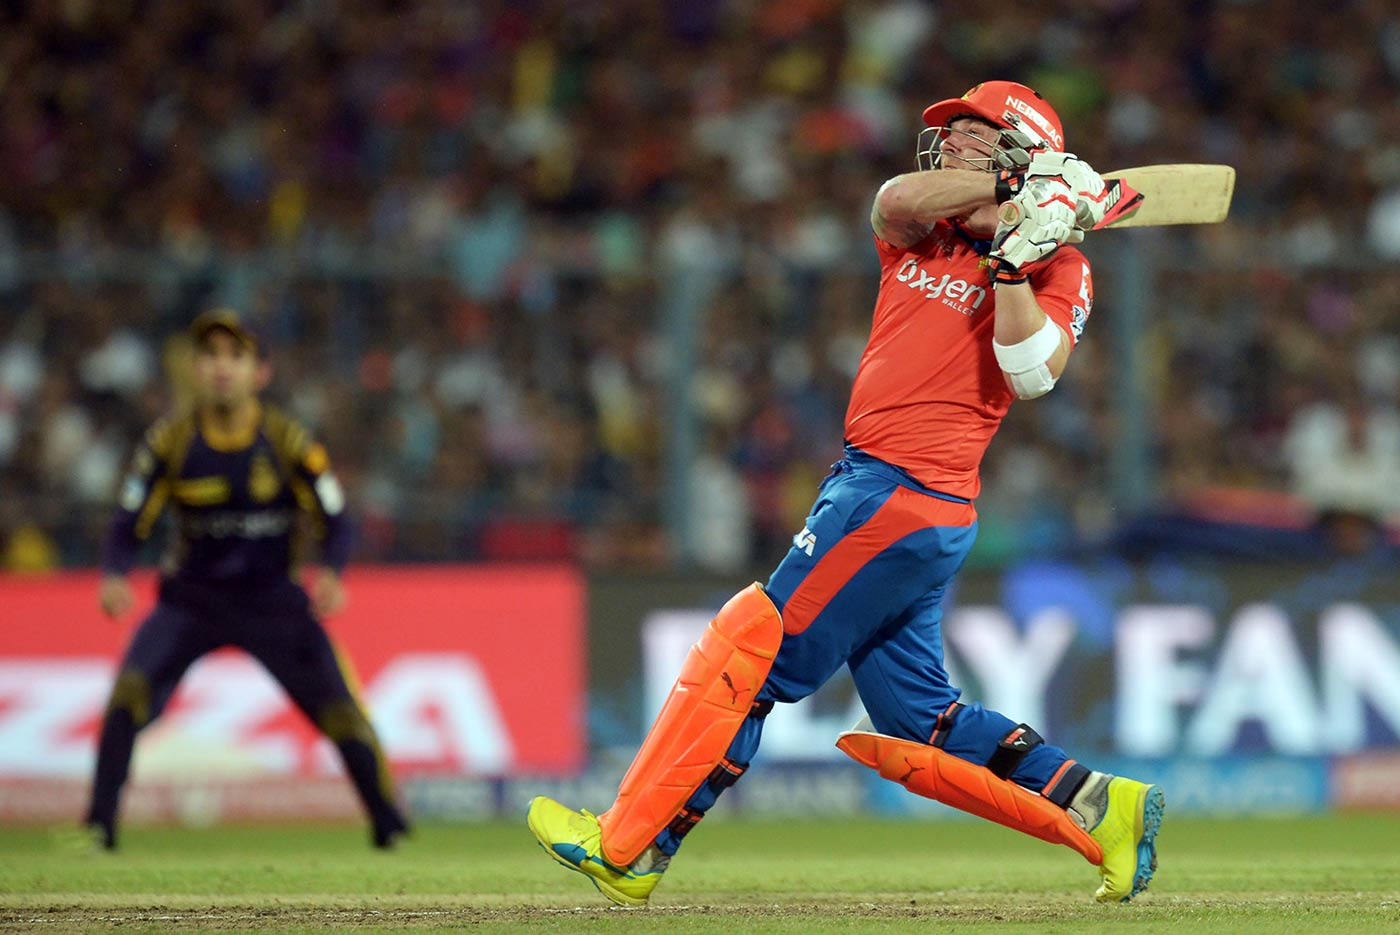 T20 will get even more turbocharged in terms of batting than it already is, as teams like Gujarat Lions have learned